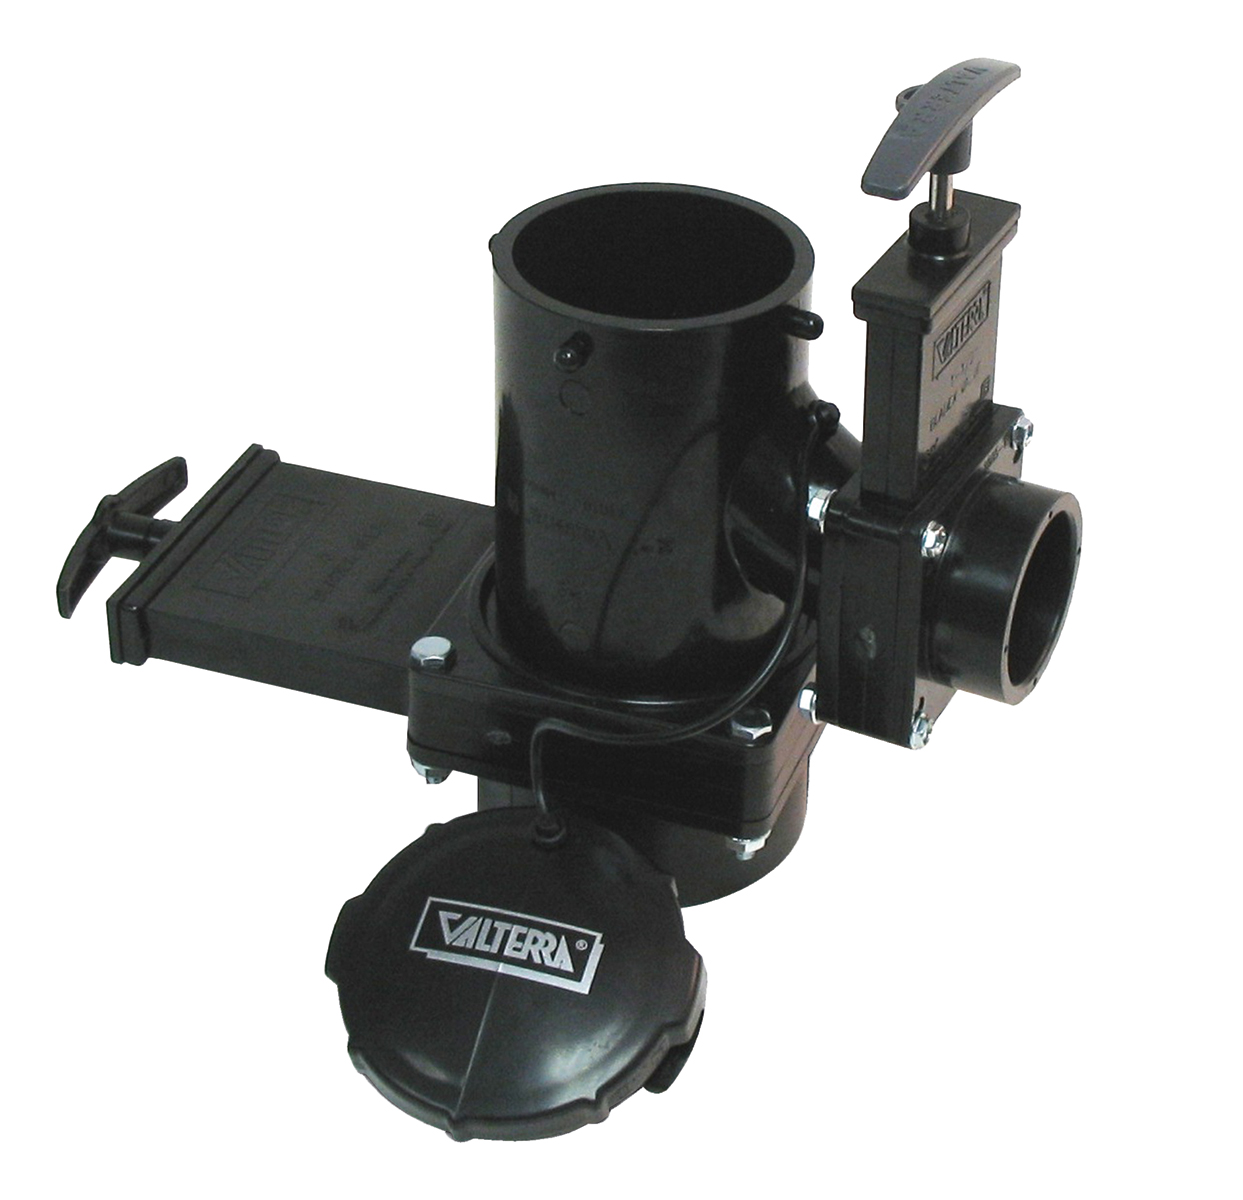 T18 Valterra Sewer Waste Valve Waste Valve For RV Black Water System